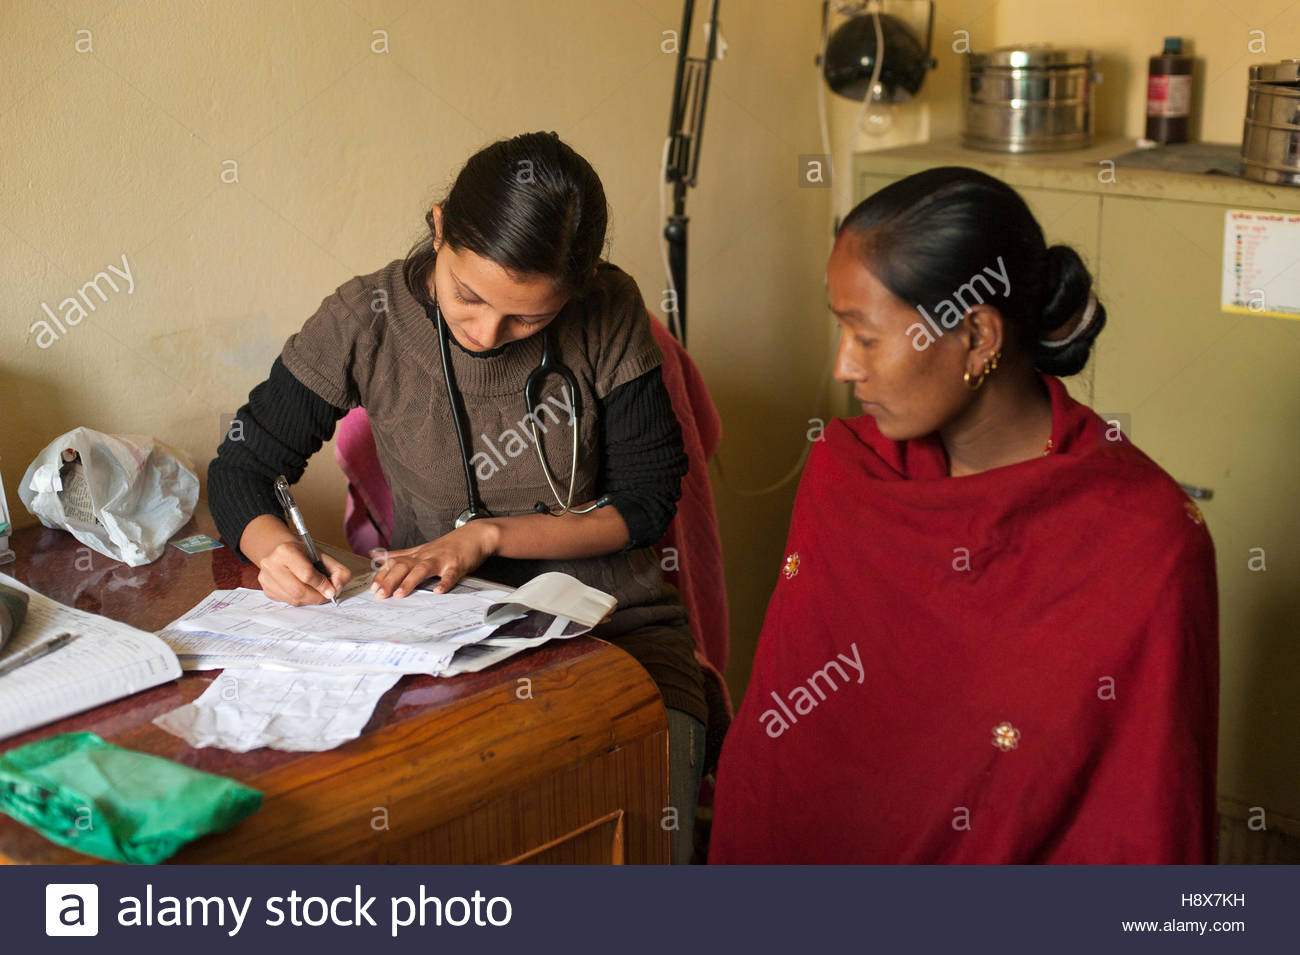 A General Practitioner consults a patient at a hospital in Nepal. Stock Photo